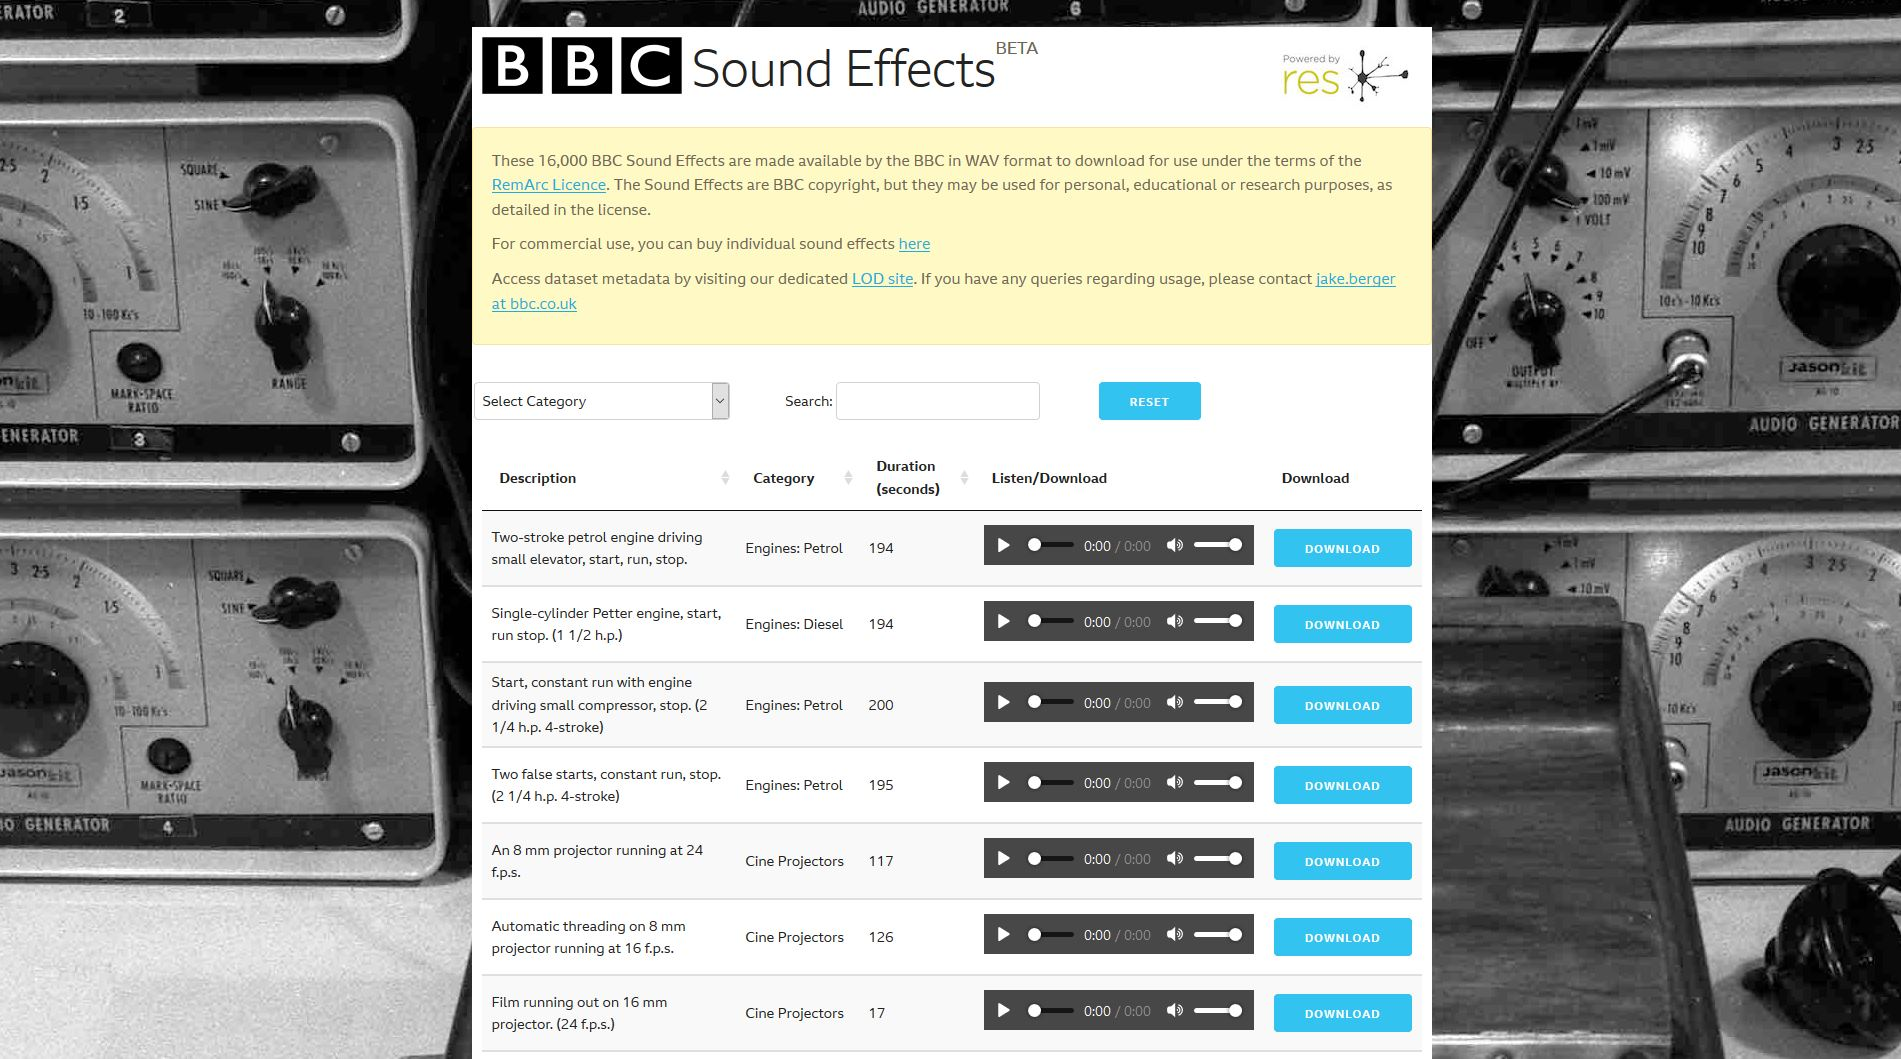 Memories sounded in a new way: BBC updated the sound archive of the project RemArc